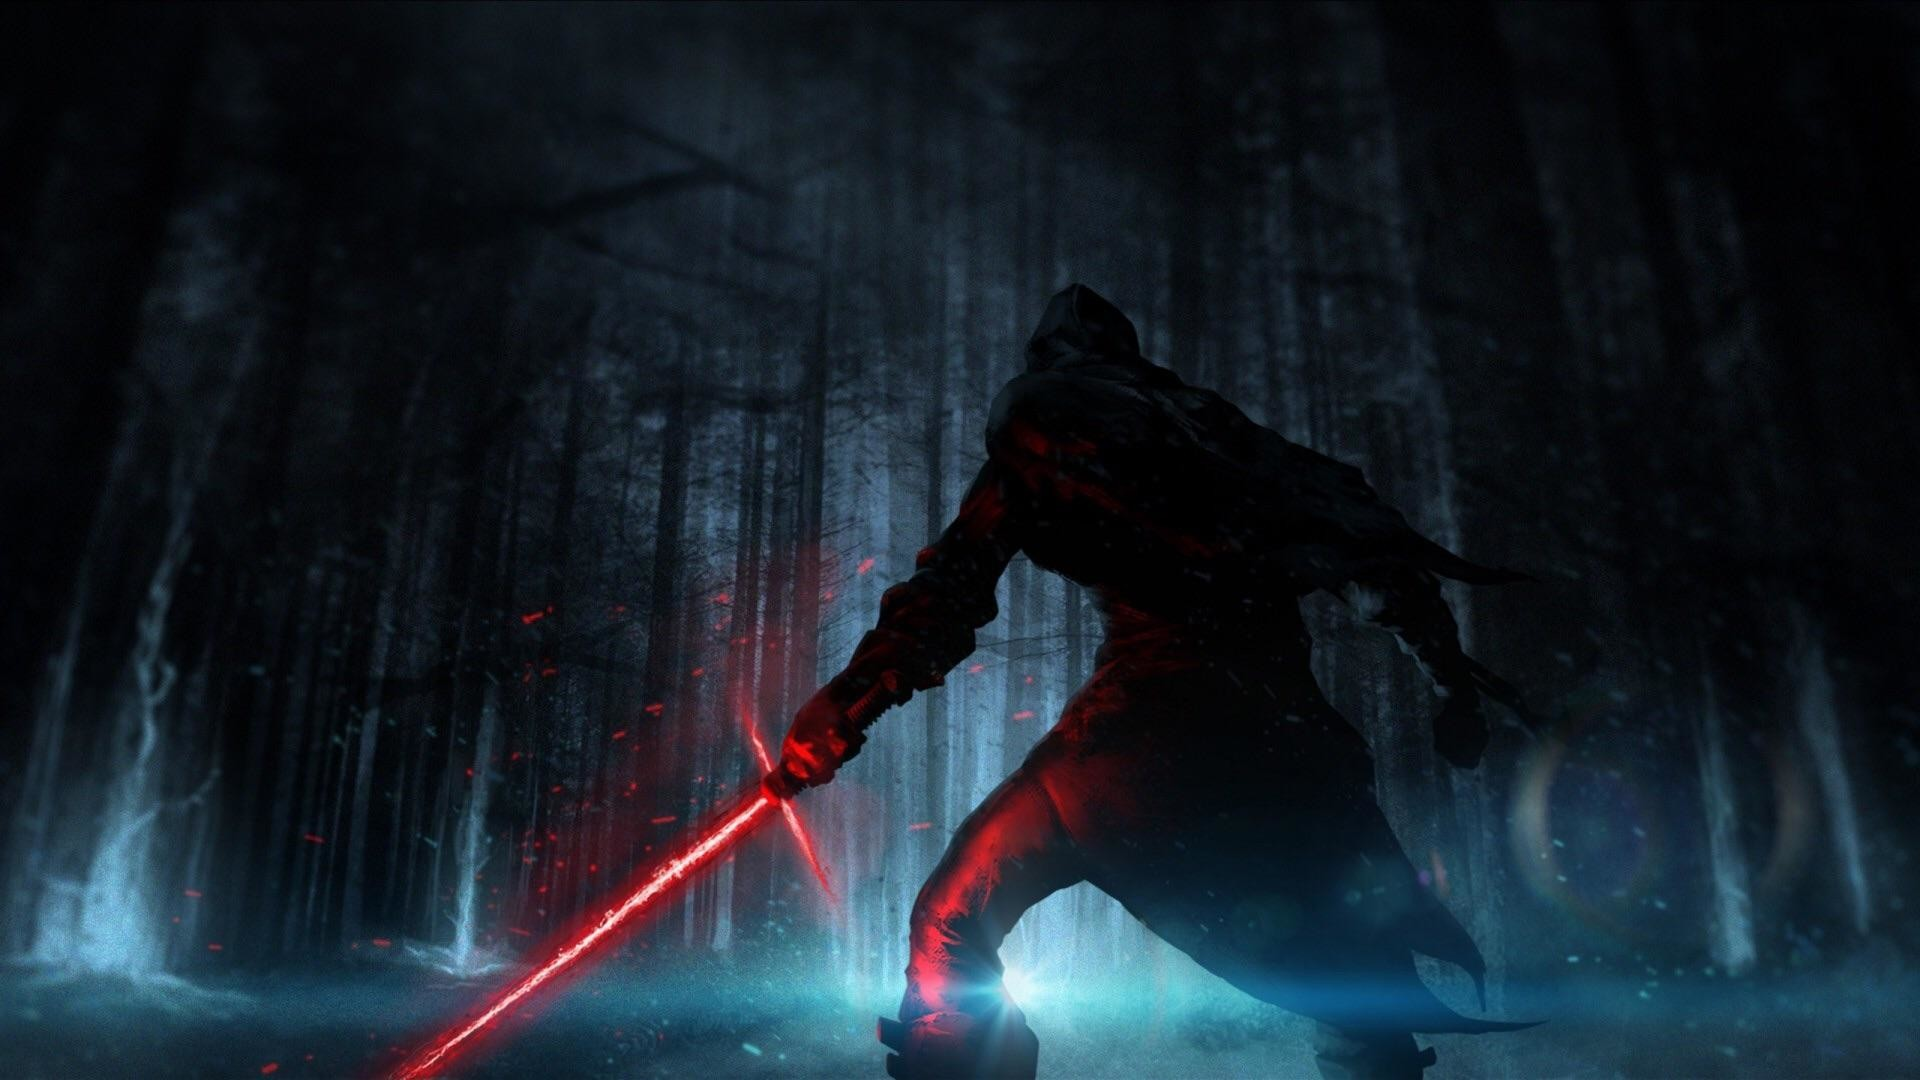 Kylo Ren [1920×1080] Need #iPhone #6S #Plus #Wallpaper/ #Background for  #IPhone6SPlus? Follow iPhone 6S Plus 3Wallpapers/ #Backgrounds Must to Have…